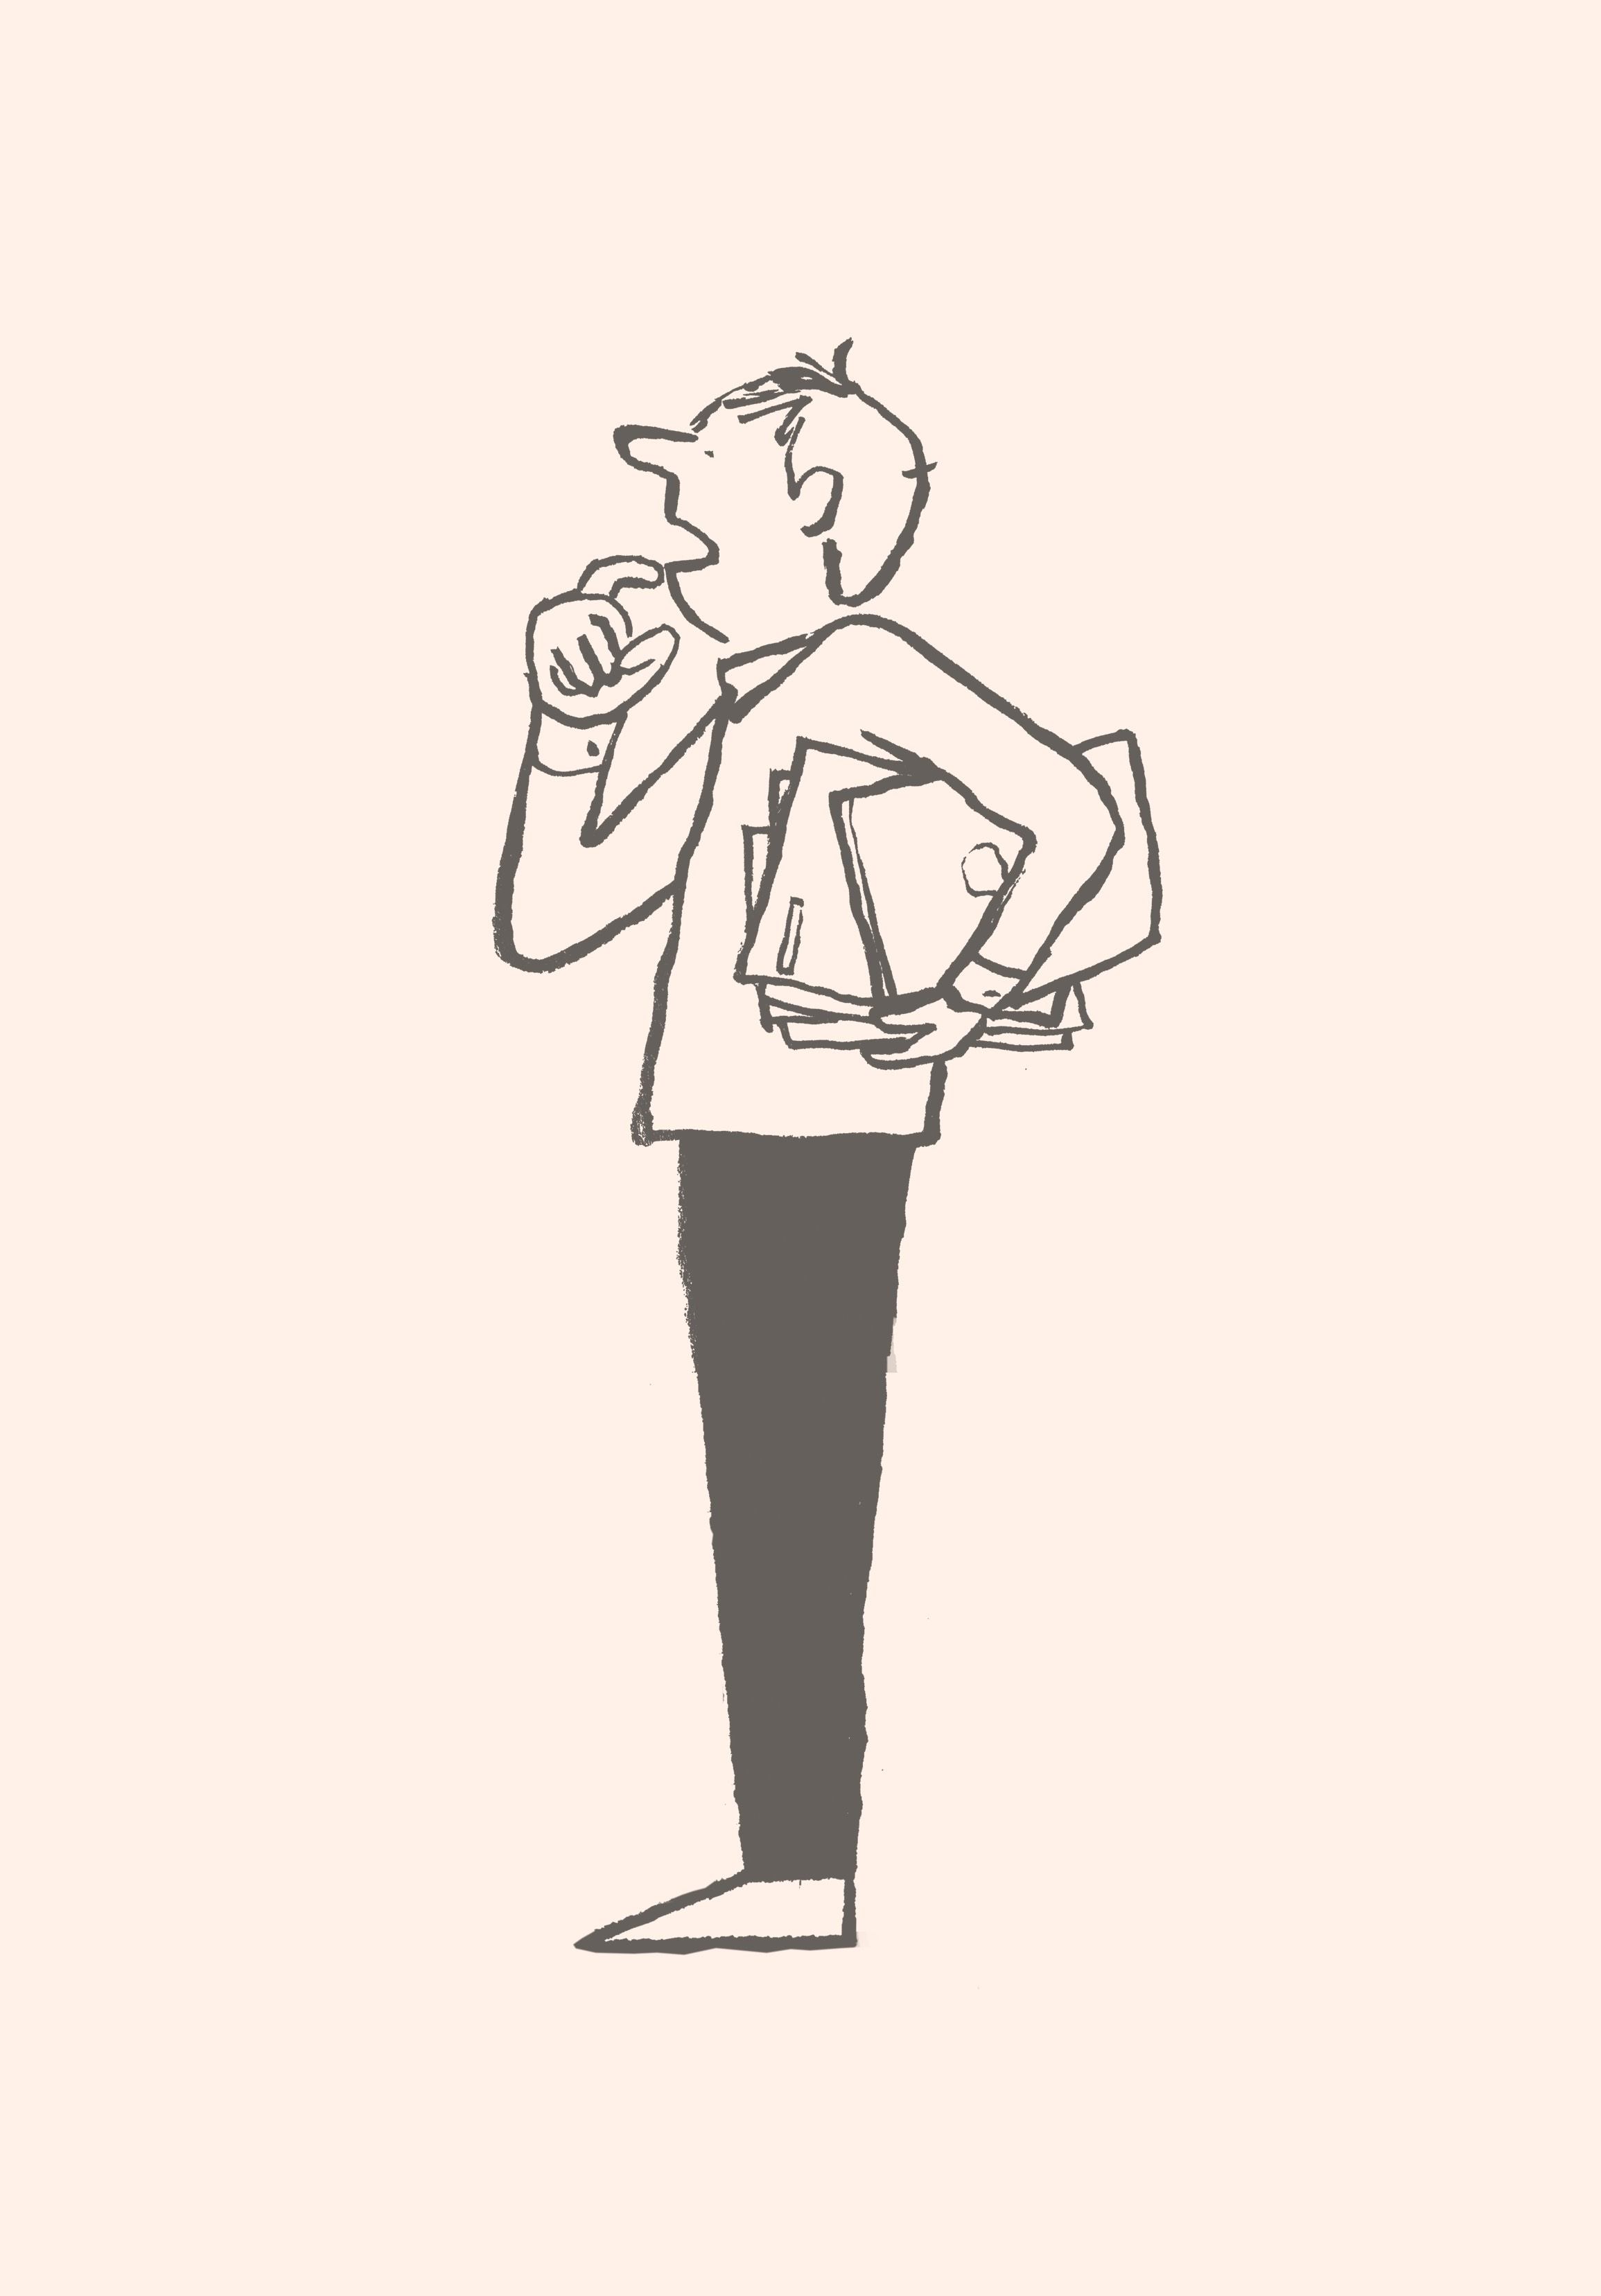 A cartoon of a man holding meeting materials and looking perplexed.